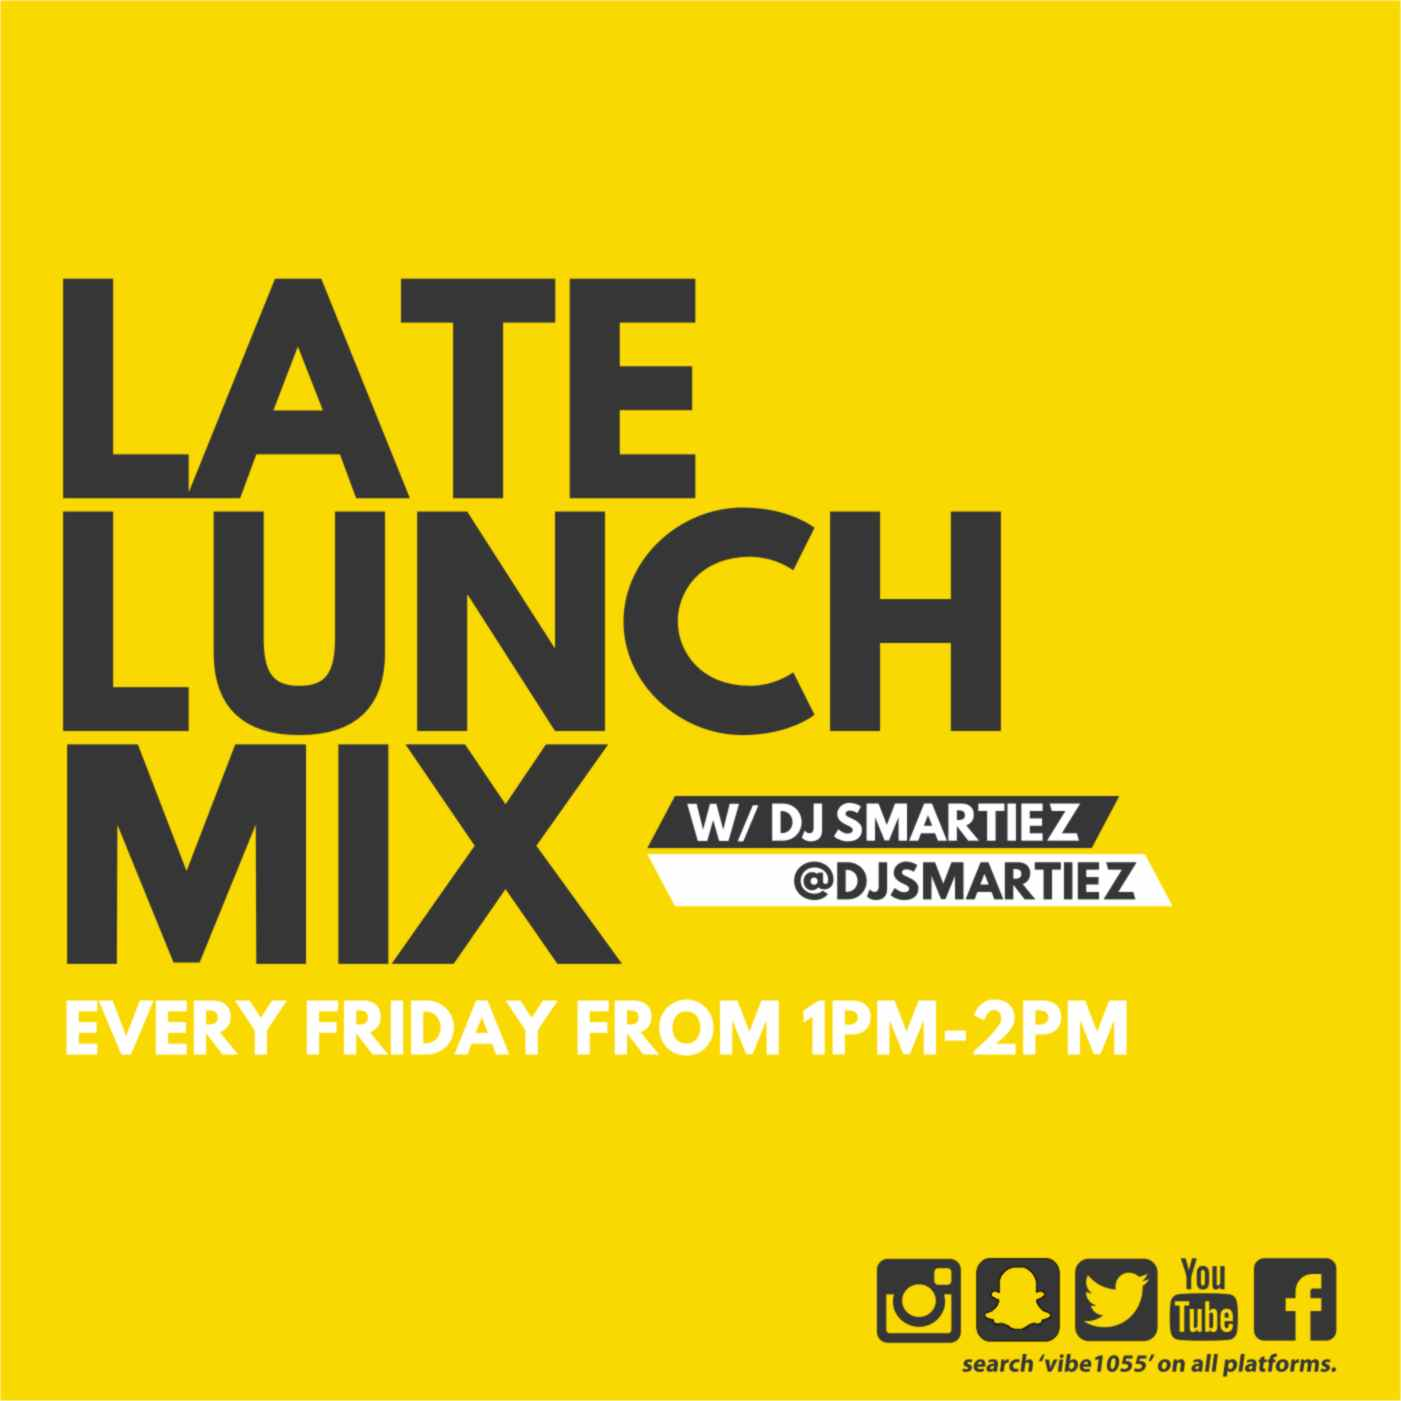 #LATELUNCHMIX – OCTOBER 7, 2016